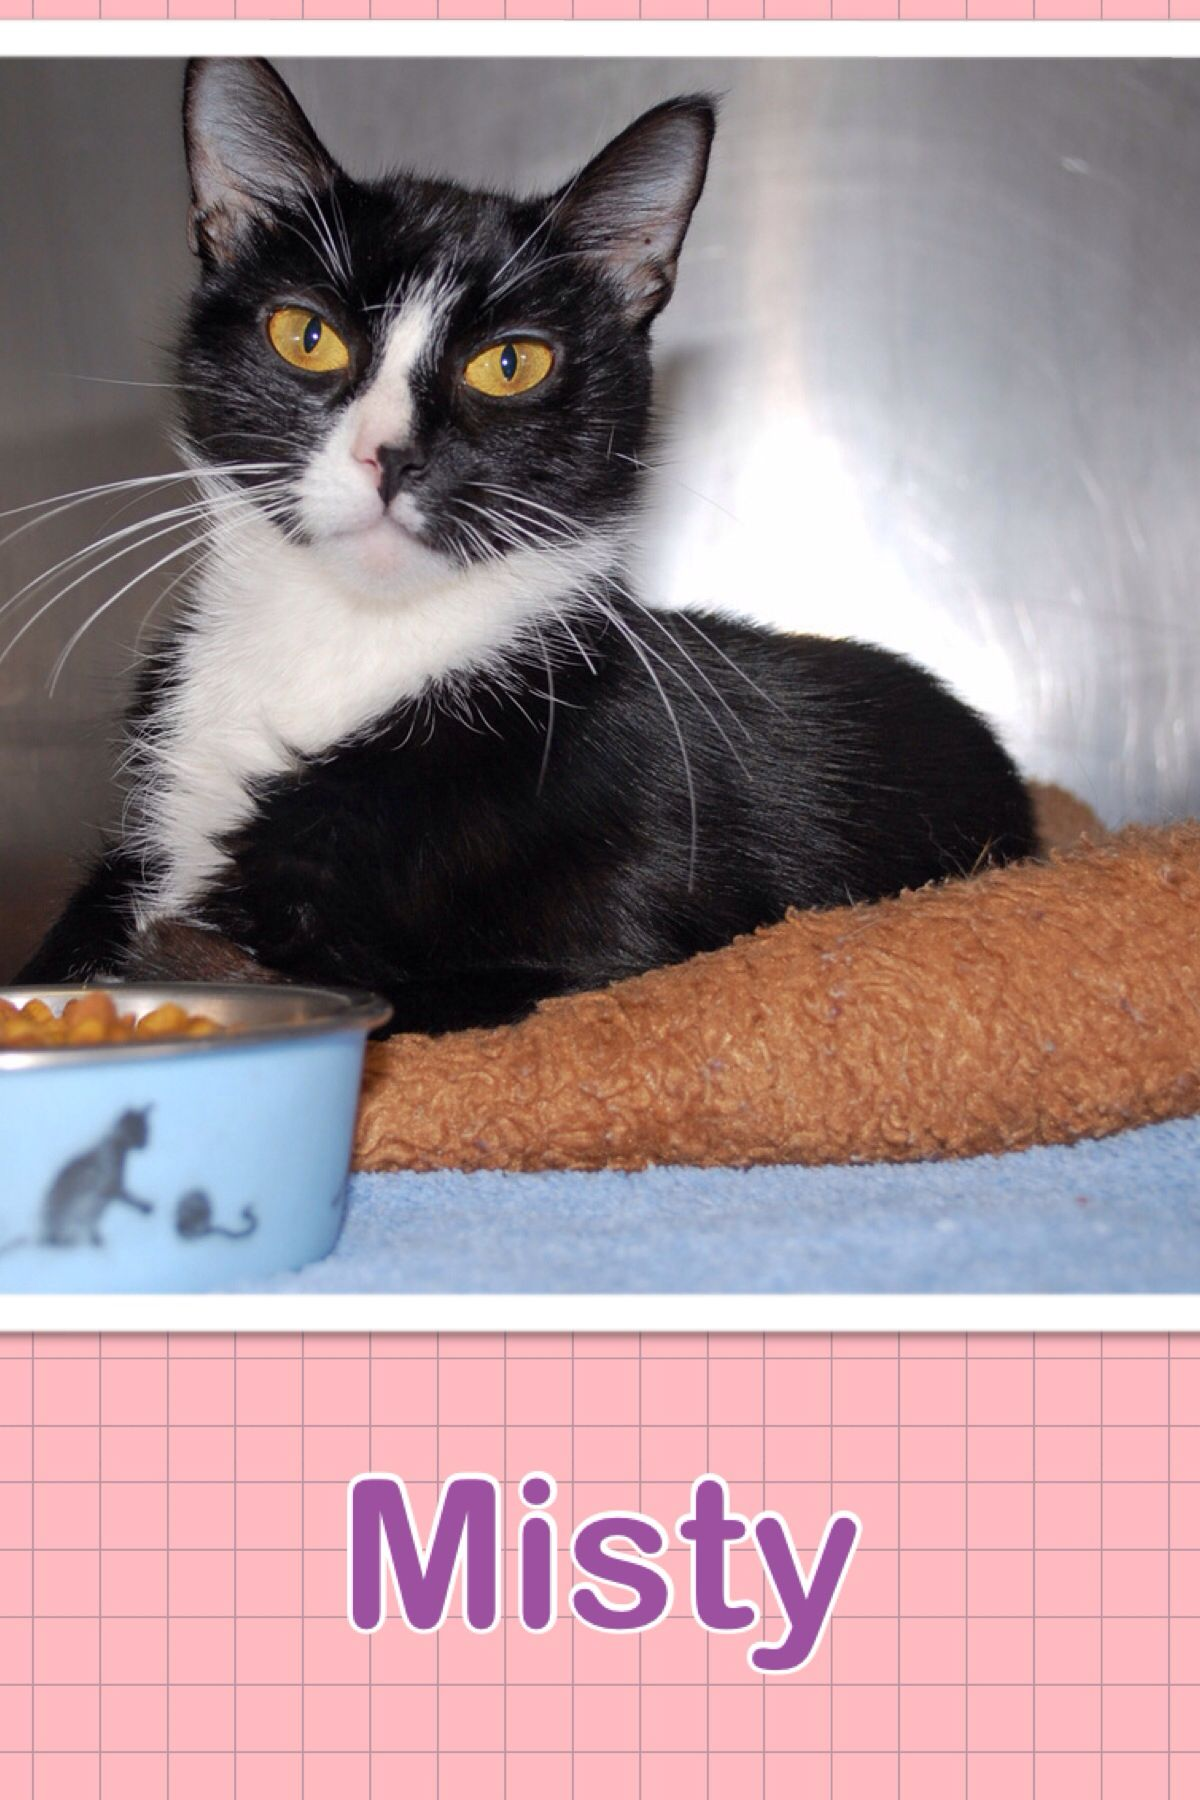 Misty, Available for Adoption. She is an Adultfemale who